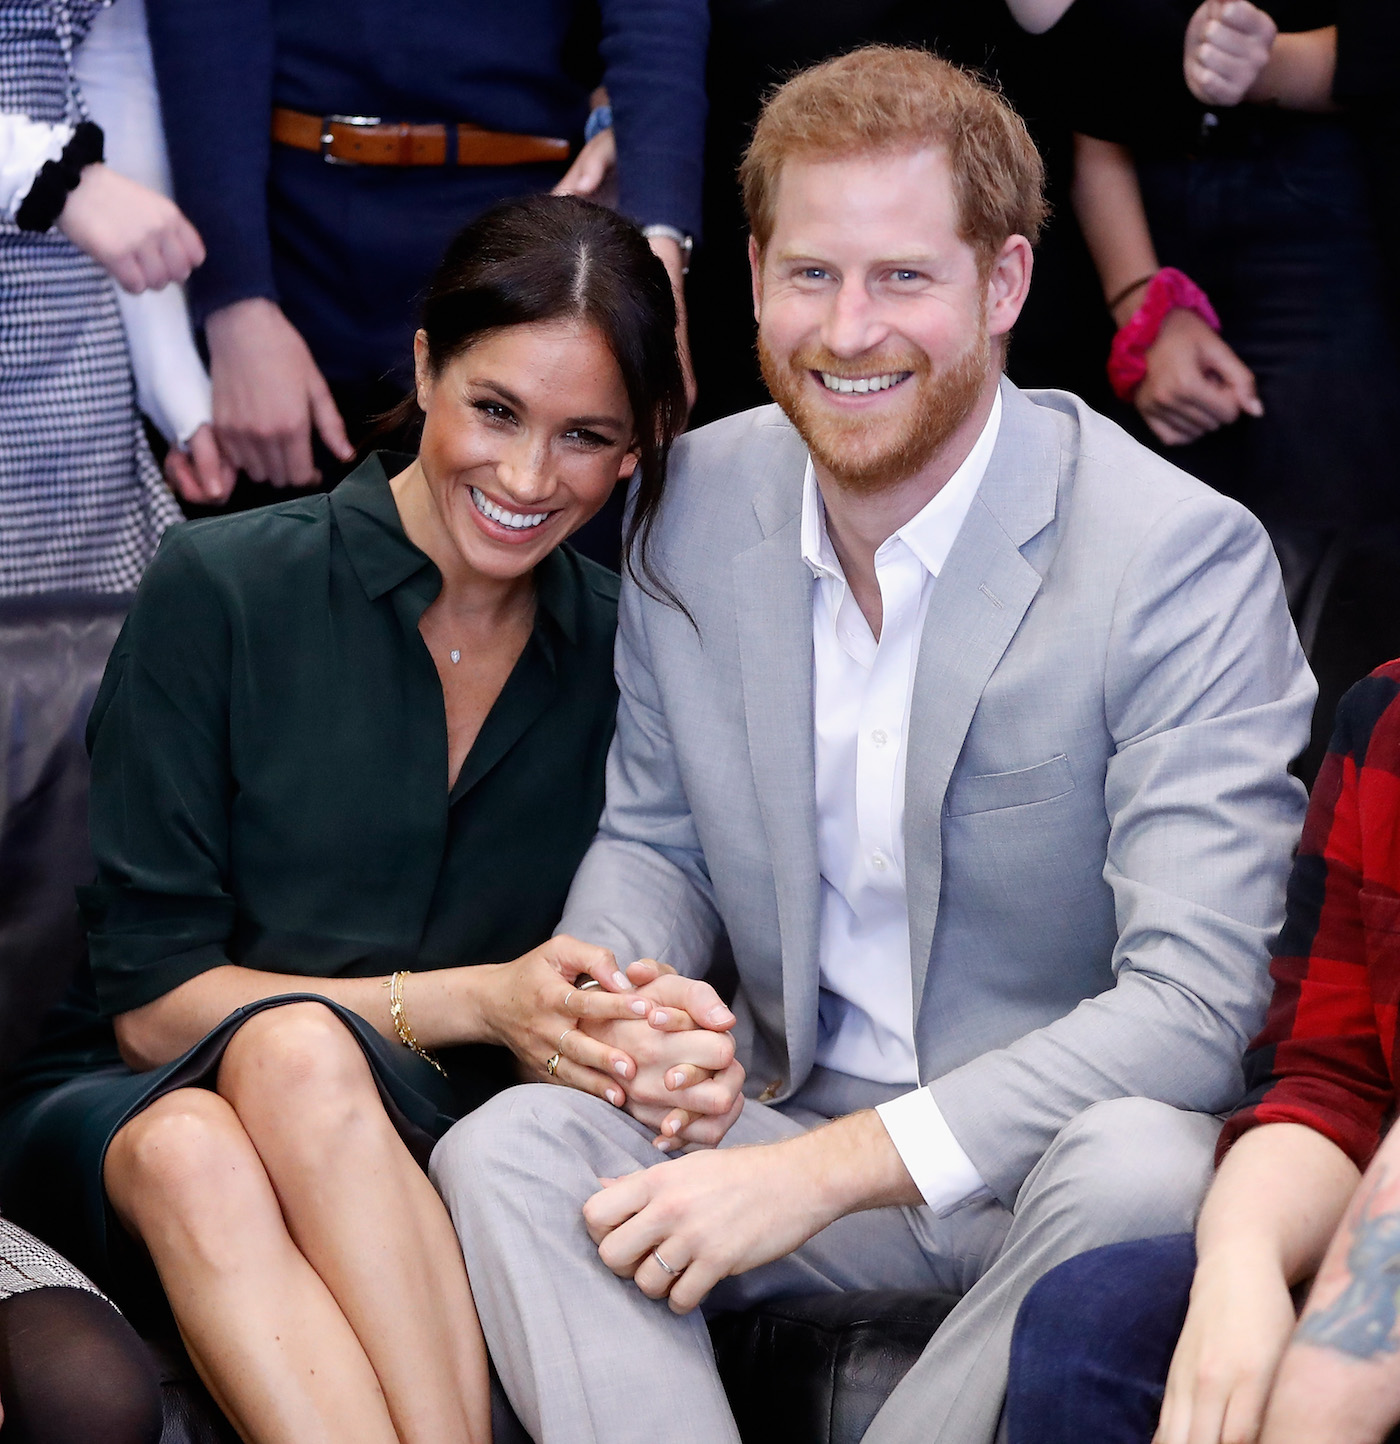 Meghan, the Duchess of Sussex, is Expecting Her First Child